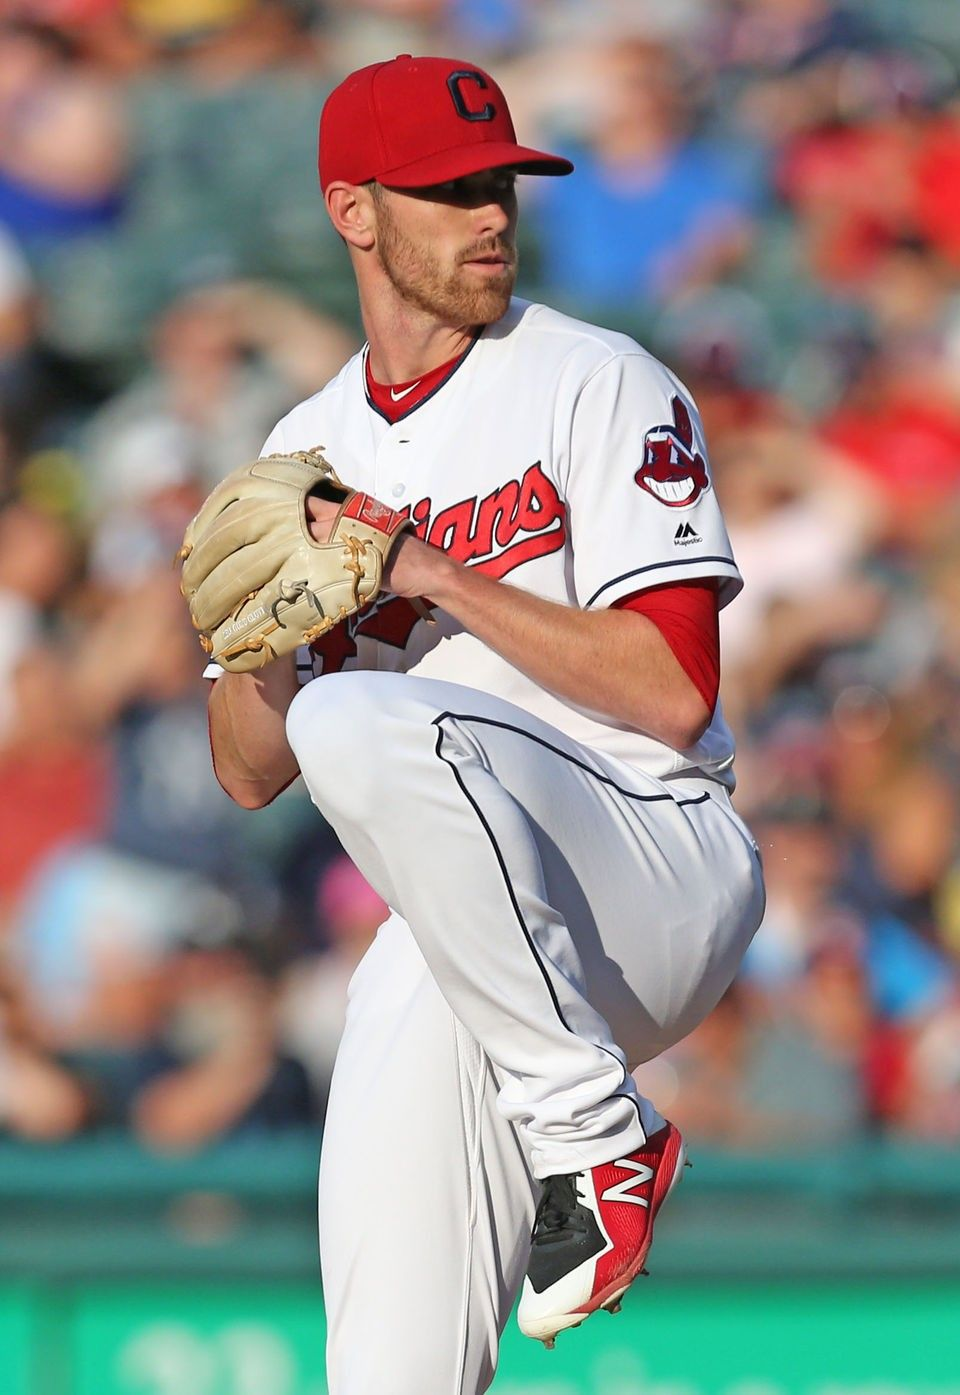 Cleveland Indians Shane Bieber Pitching Against The New York Yankees At Progressive Field July Cleveland Baseball Cleveland Indians Baseball Indians Baseball